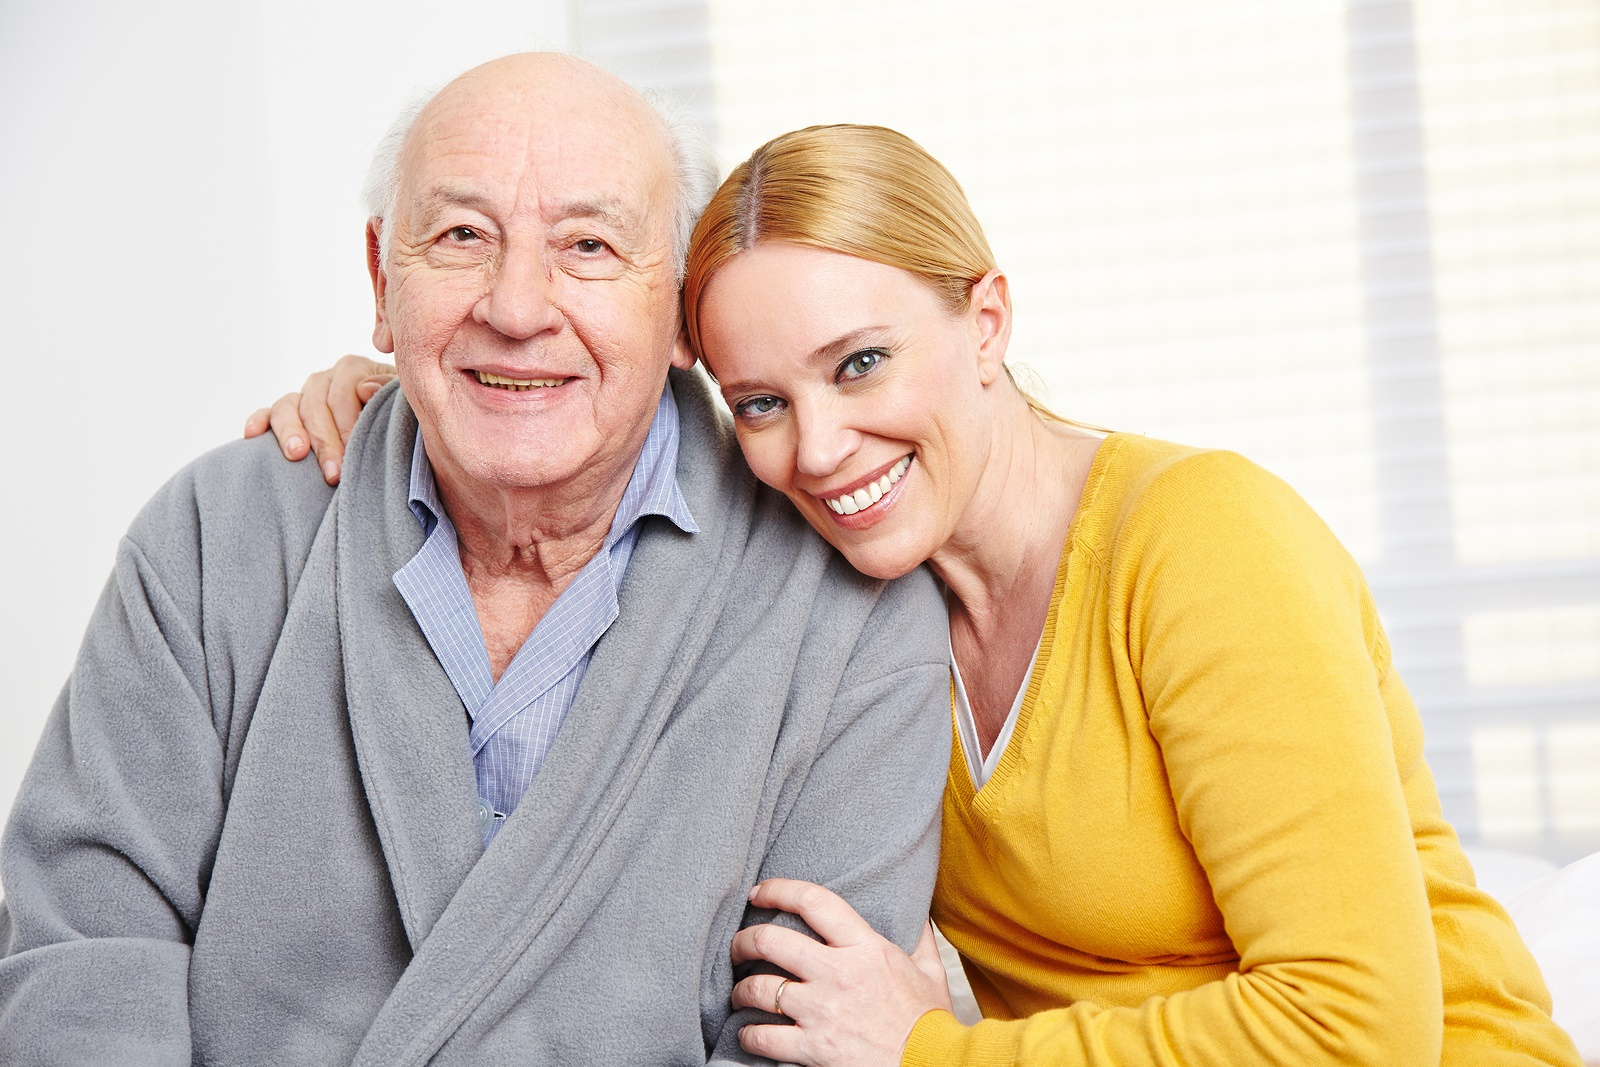 Seniors and Resources for Their Care